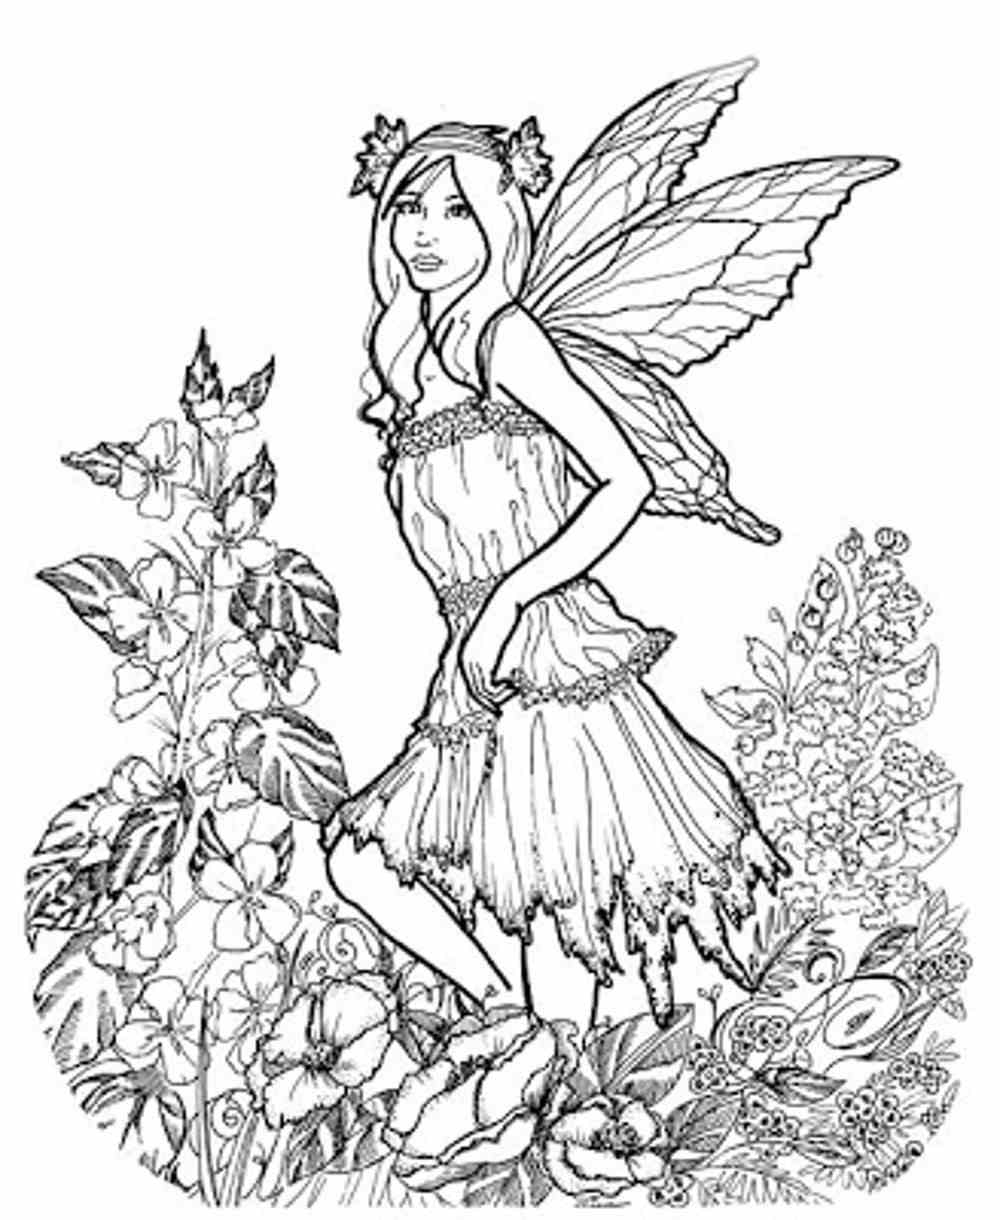 Free coloring pages spring - Beautiful Spring Coloring Pages For Adults Coloring Pages For